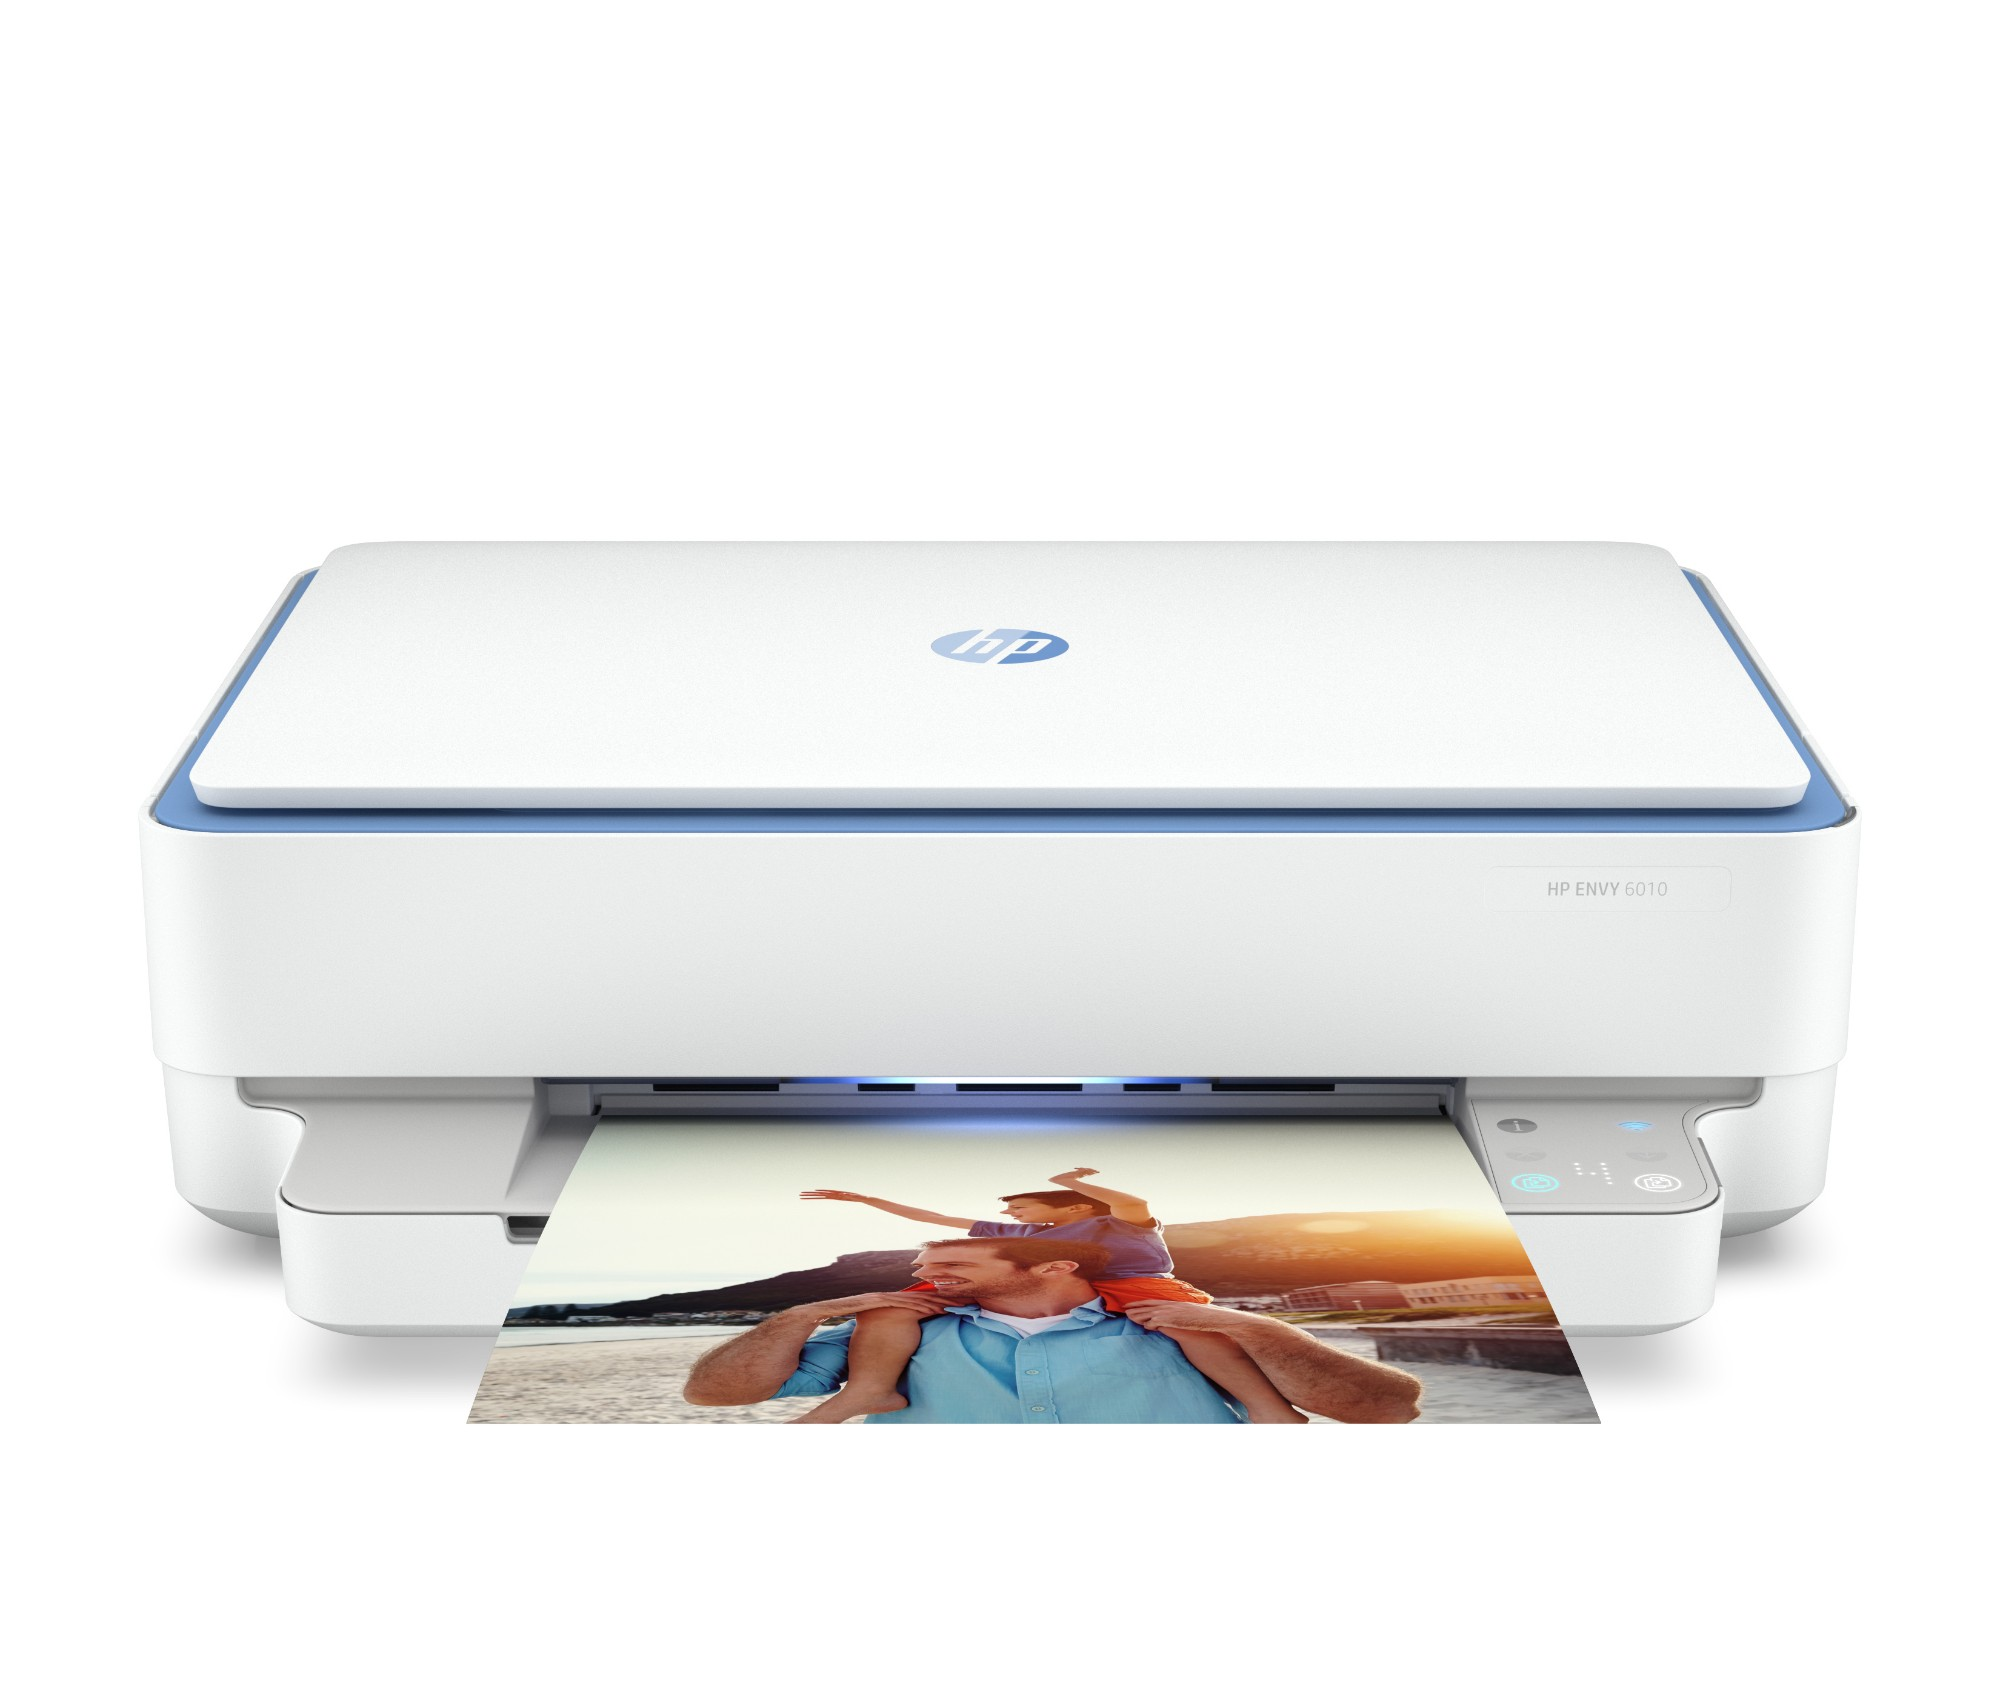 HP Envy 6010 All-in-One